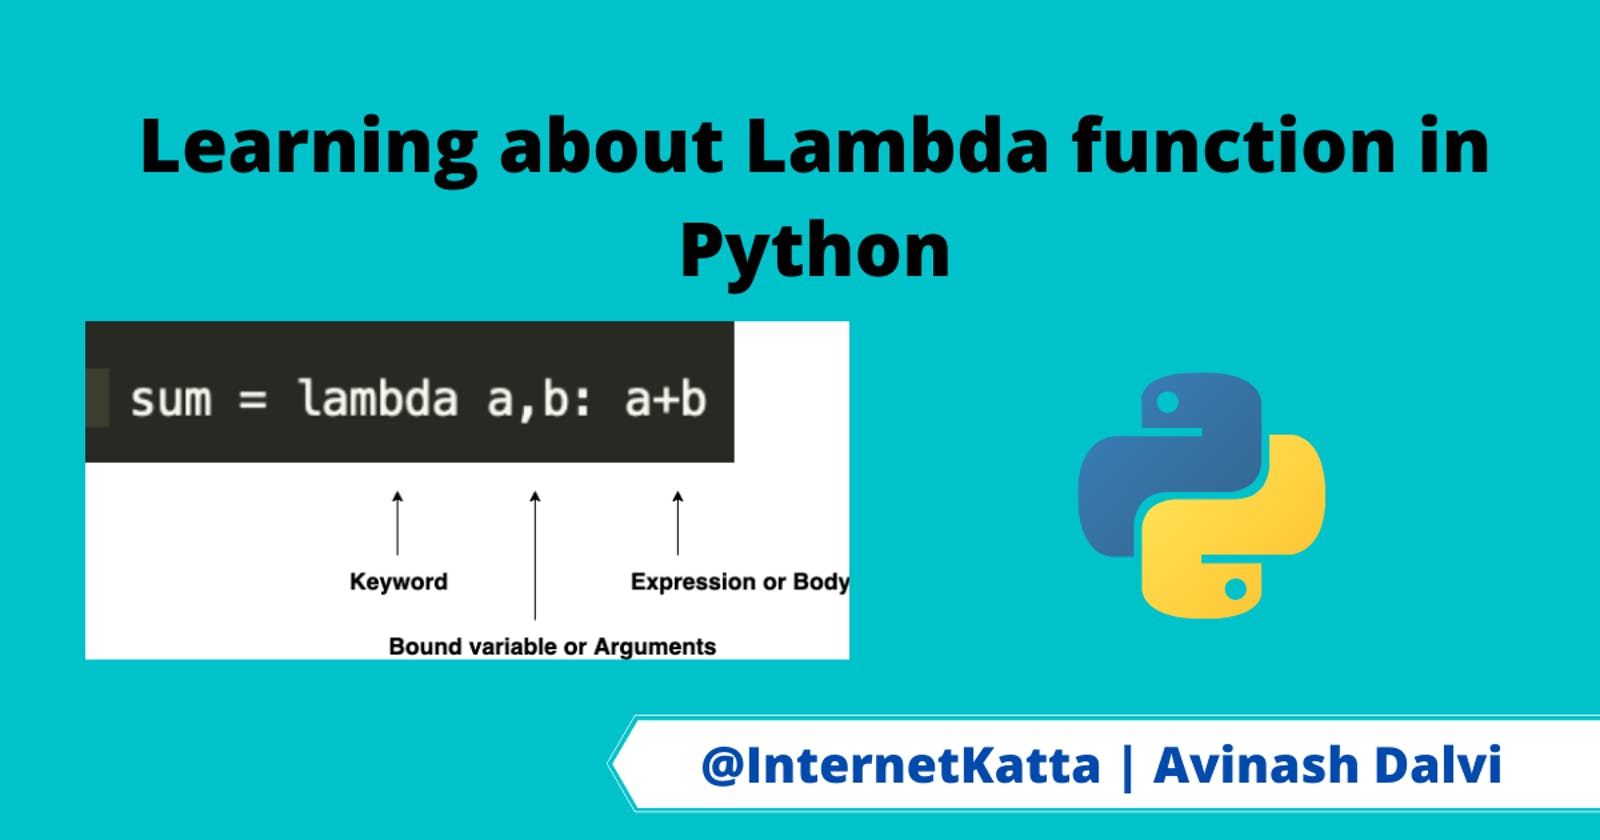 Learning about Lambda function in Python